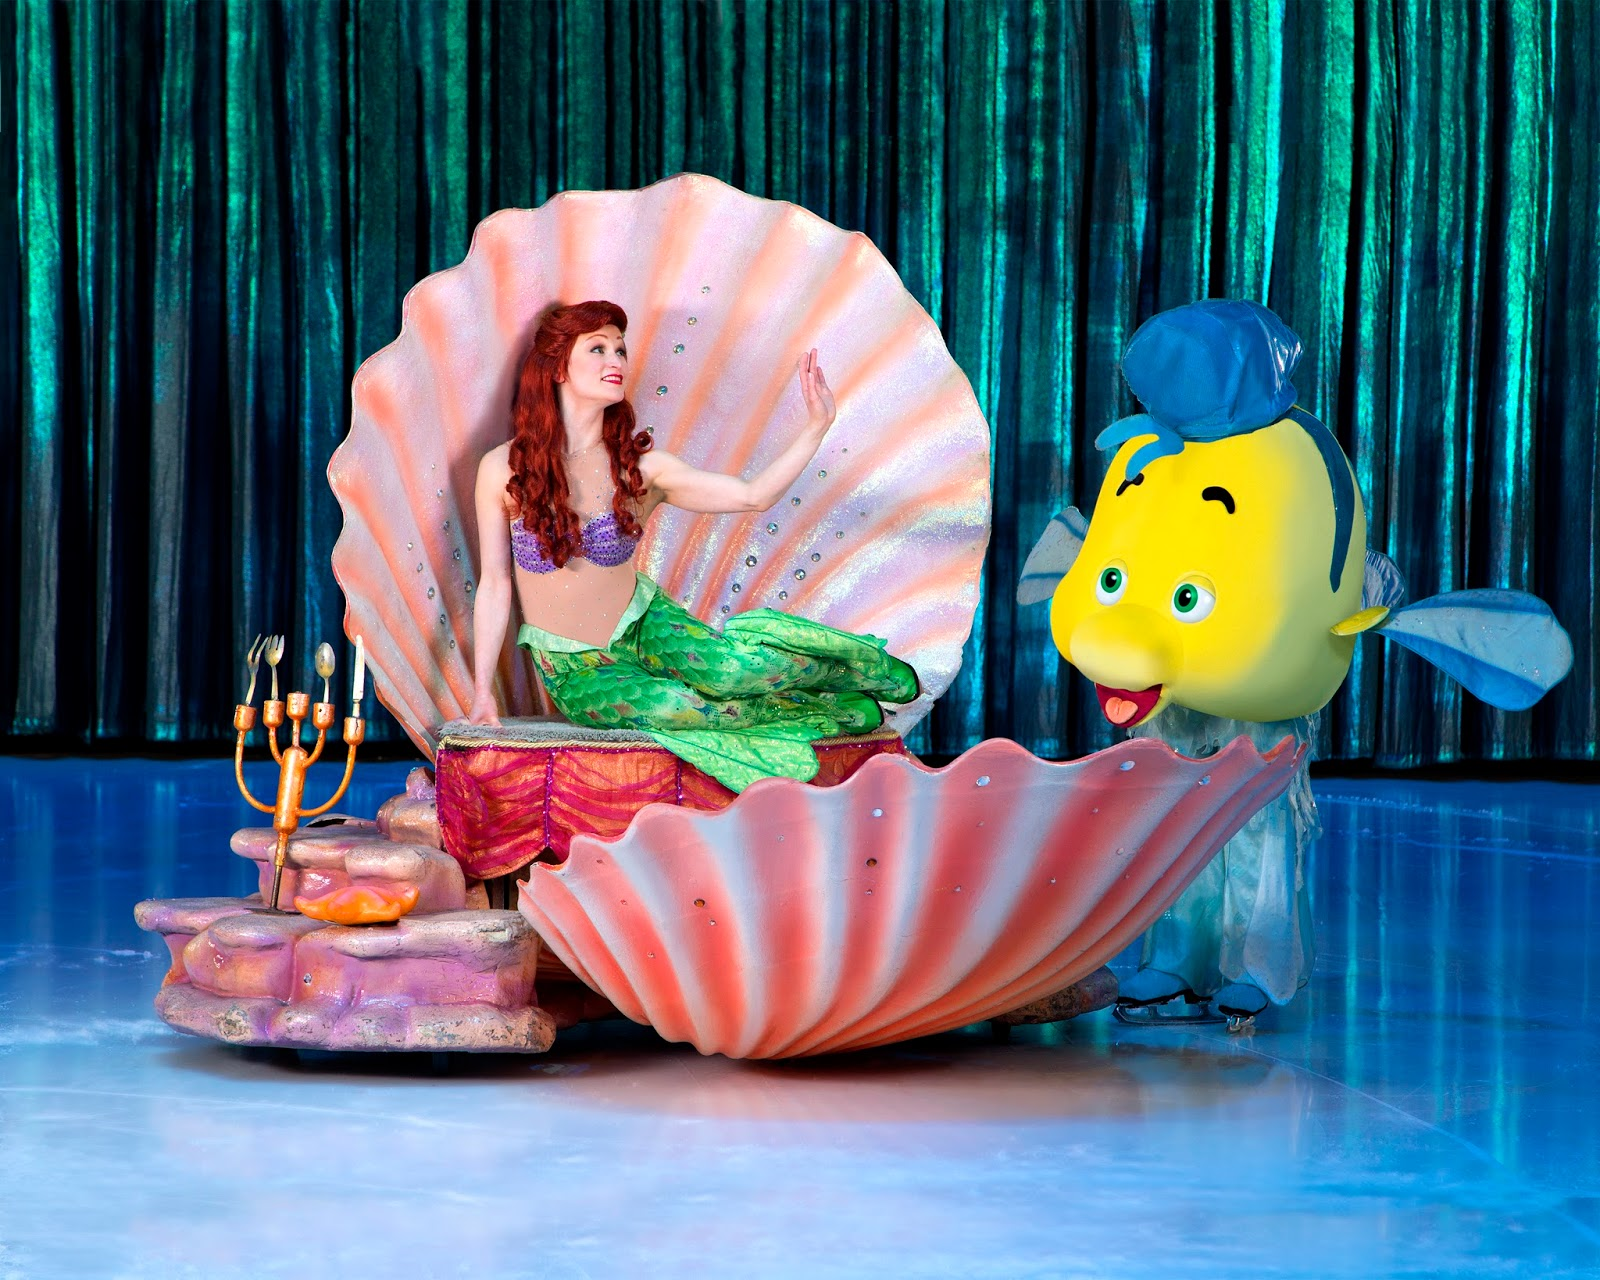 Why Heidi can't wait to watch The Little Mermaid in this year's Disney on Ice presents Passport to Adventure - Ursula